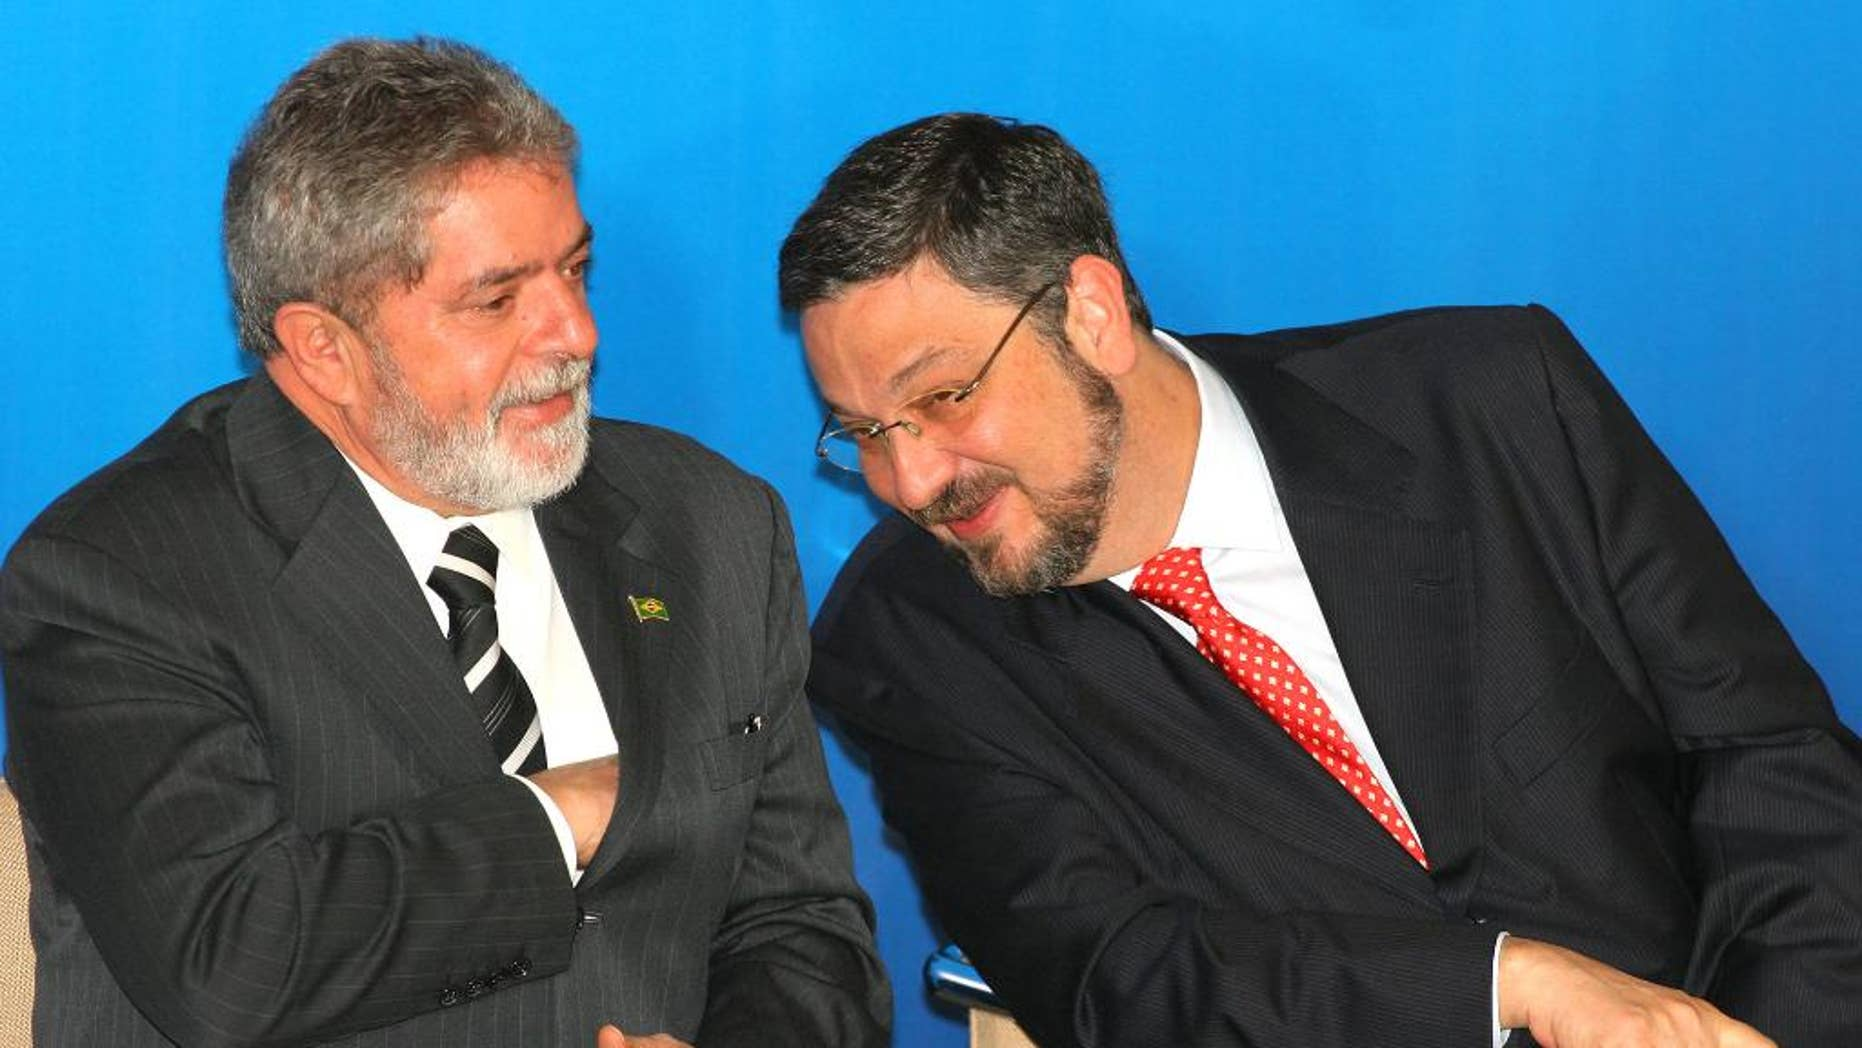 FILE - In this June 15, 2005 file photo, Brazil's President Luiz Inacio Lula da Silva, left, speaks with his Economy Minister Antonio Palocci during a ceremony at the presidential palace in Brasilia, Brazil.  Palocci was arrested, police said on Monday, Sept. 26, 2016, the latest detention in connection with a wide-ranging investigation into a kickback scheme in state oil company Petrobras. This month investigators charged Lula with money laundering and corruption.  (AP Photo/Eraldo Peres, File)